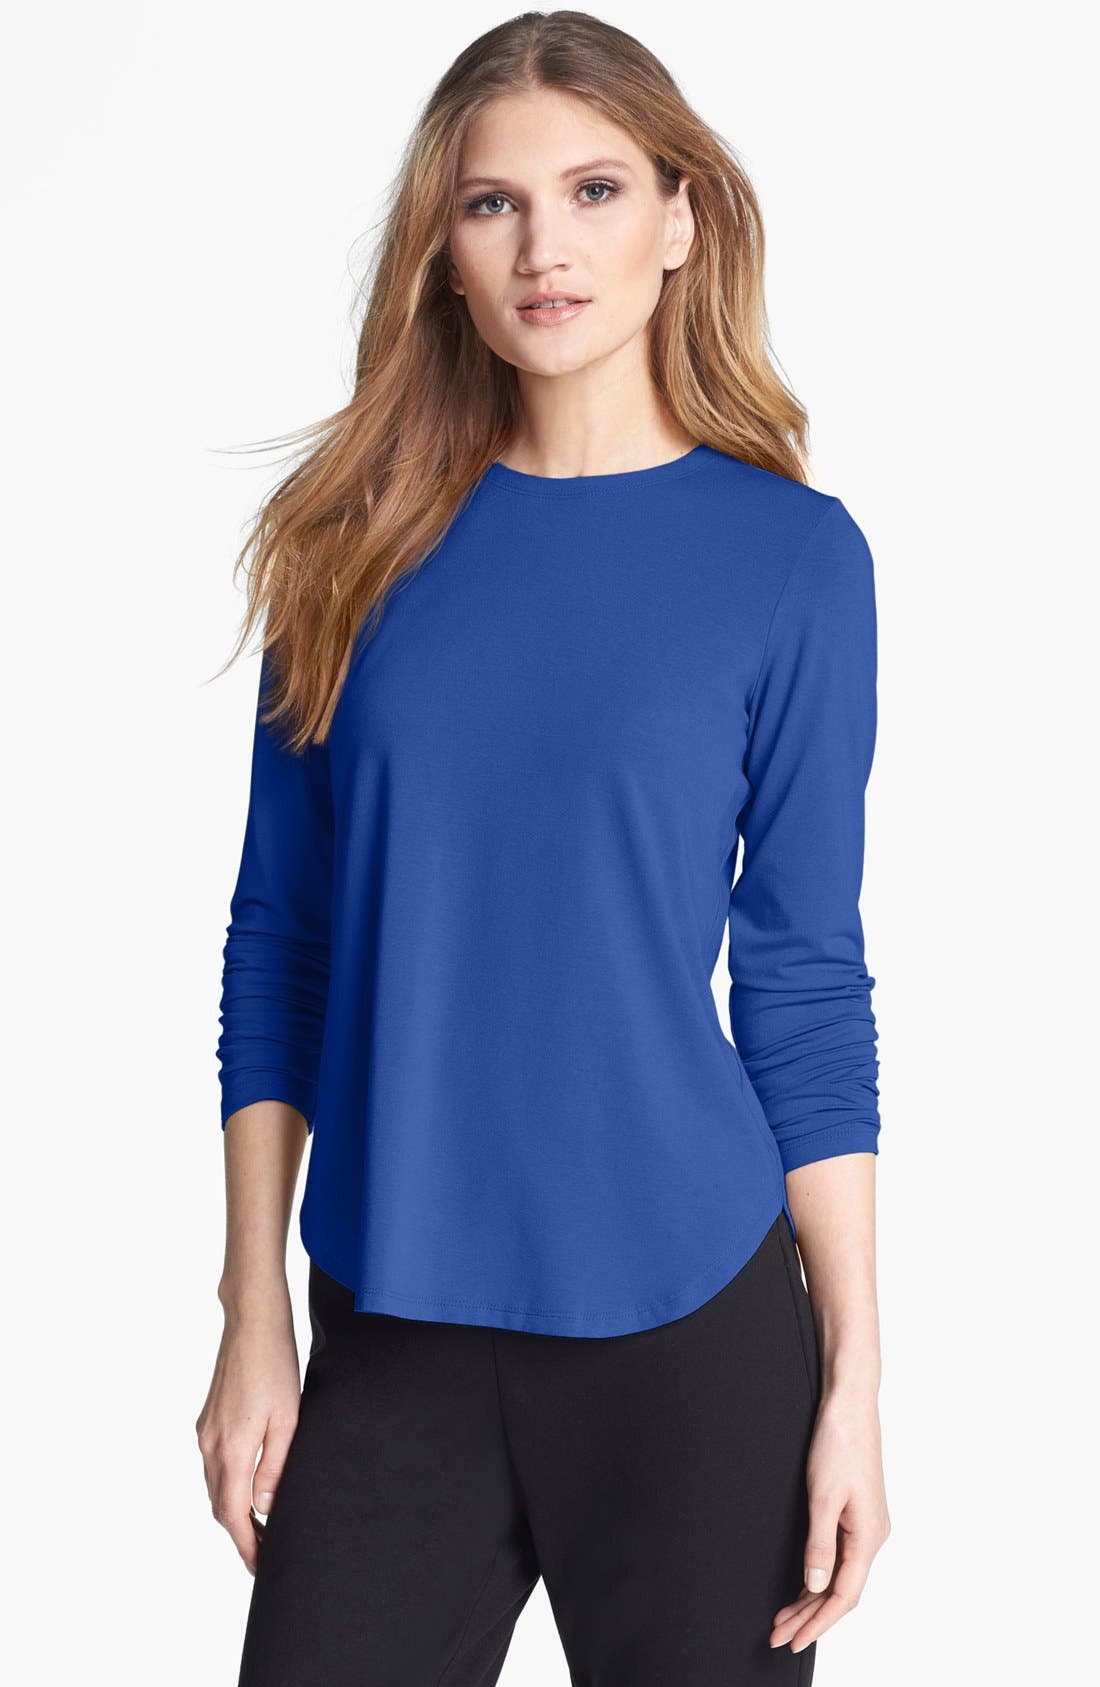 Main Image - Eileen Fisher Stretch Jersey Crewneck Tee (Petite)